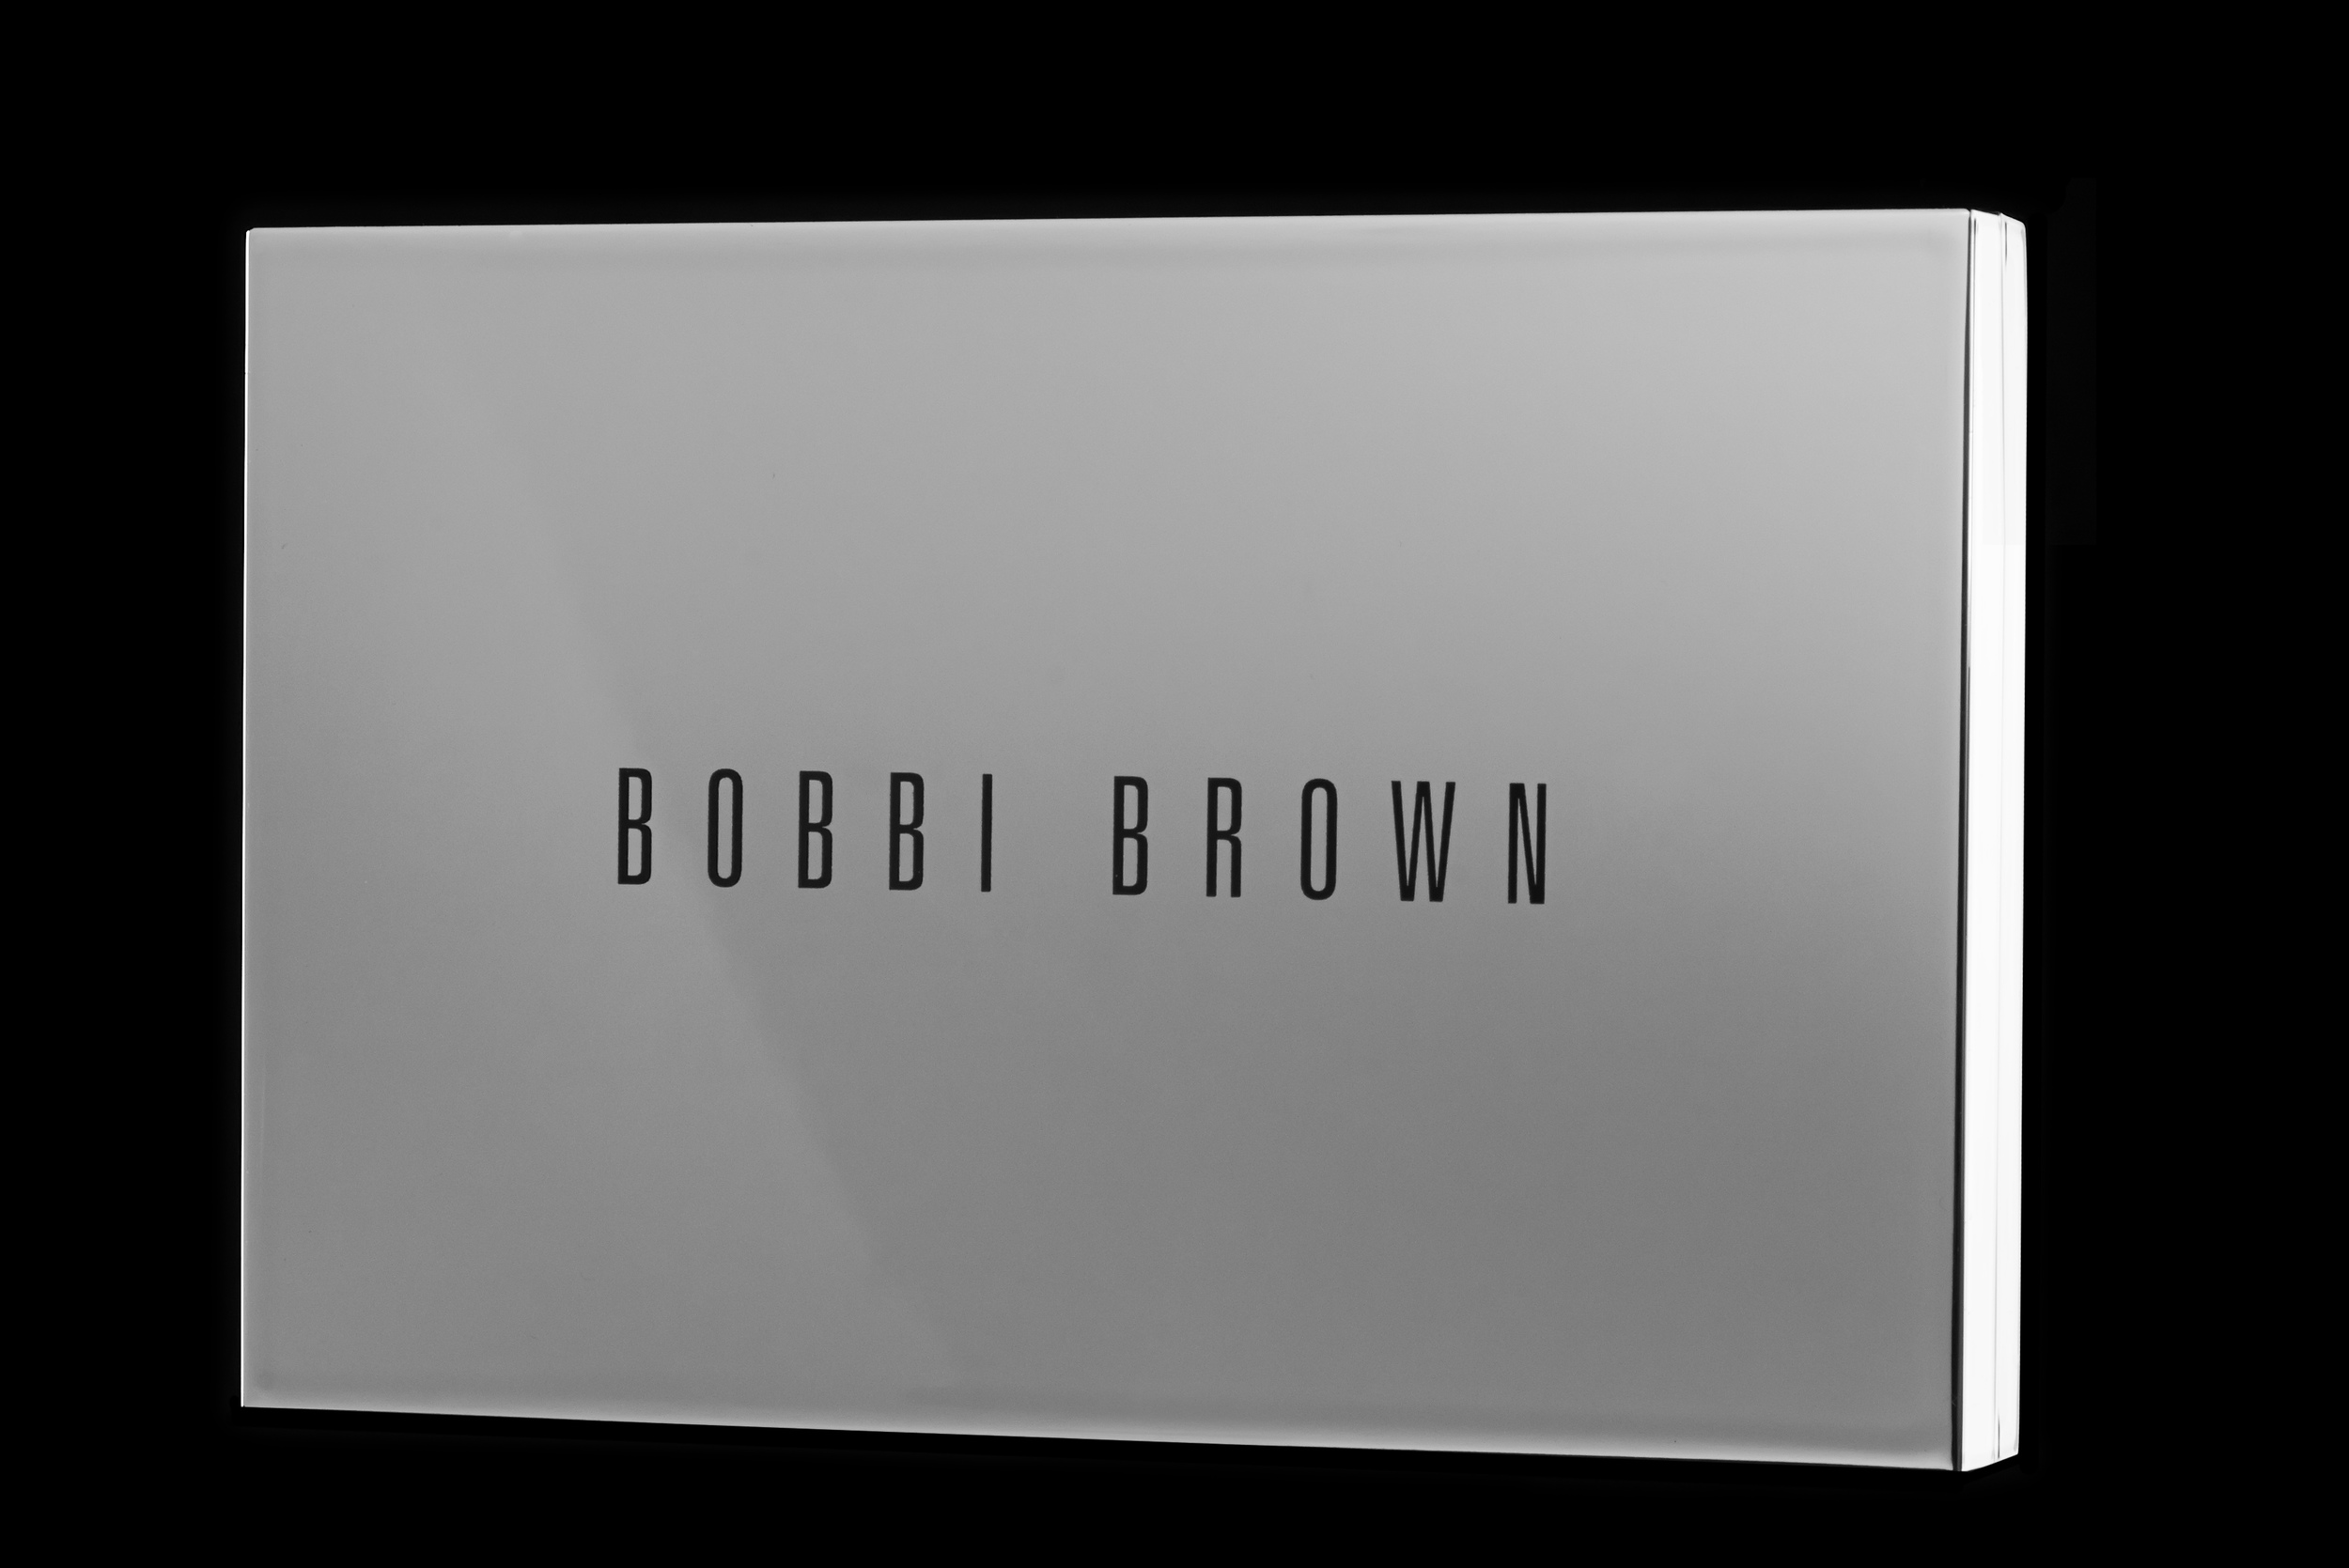 BobbiBrownBox.jpg